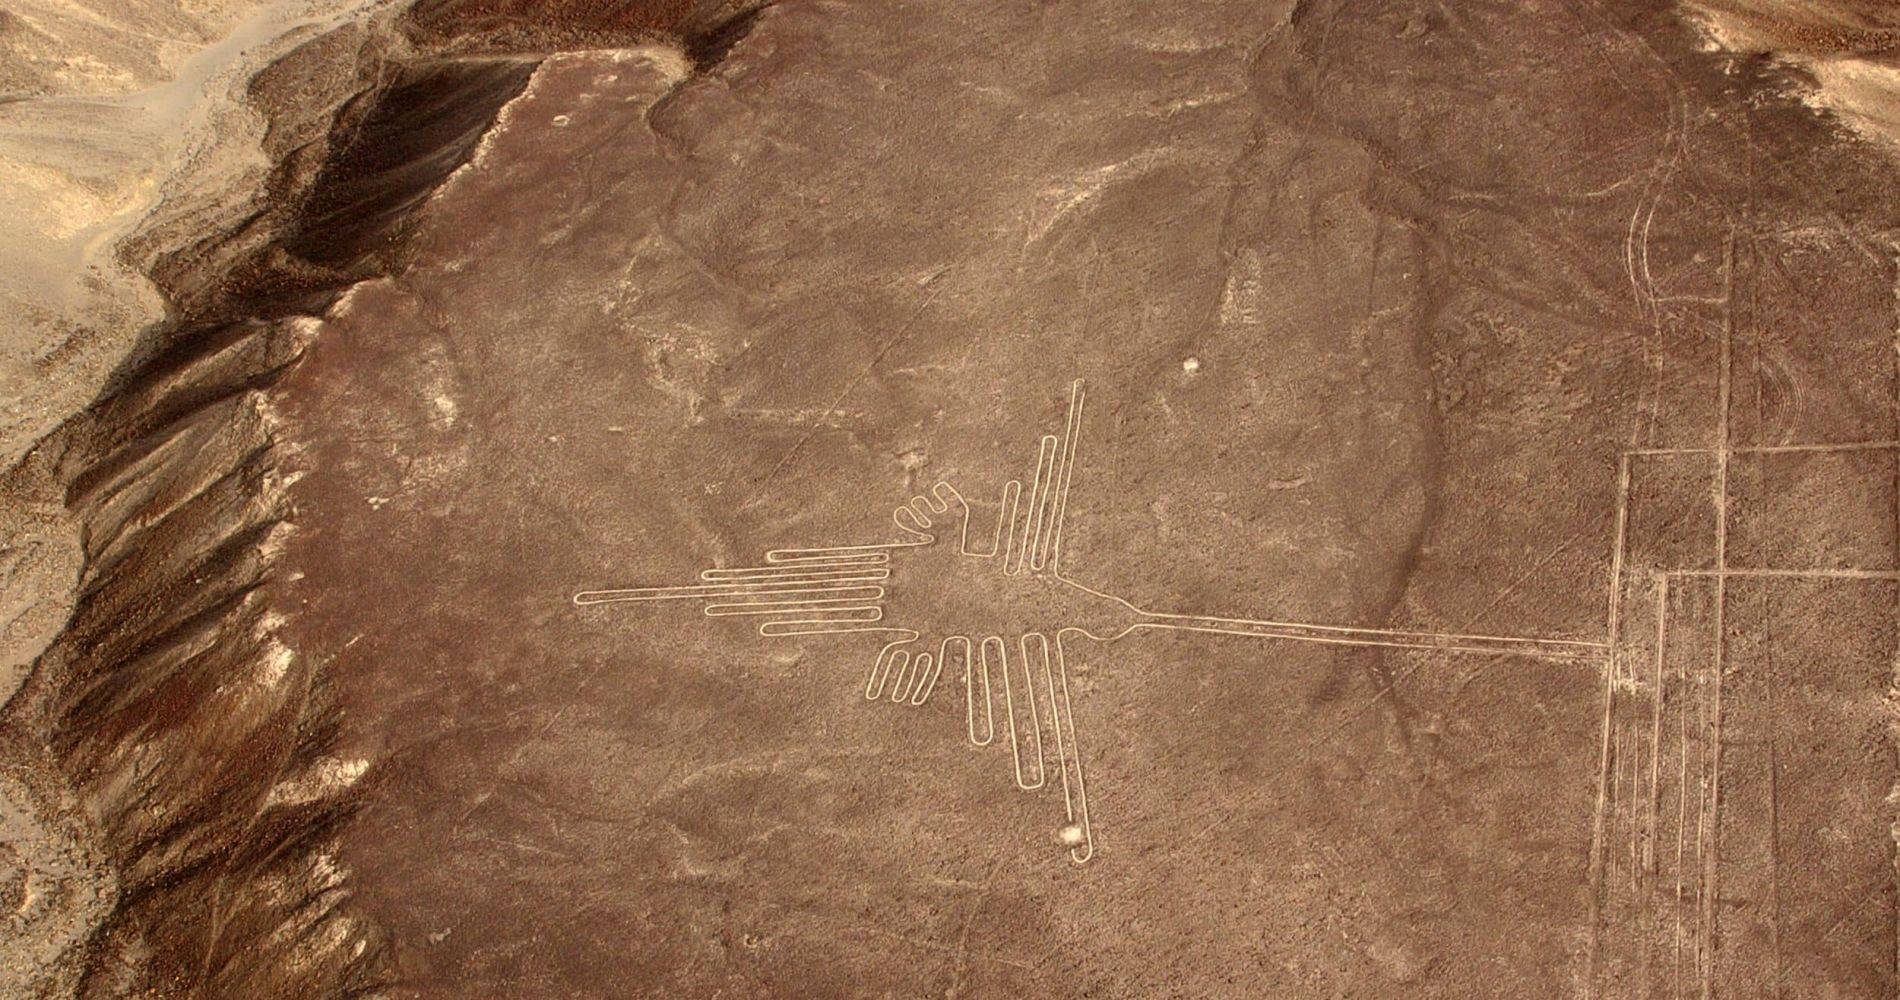 Nazca Lines Fly-Over Experience in Peru